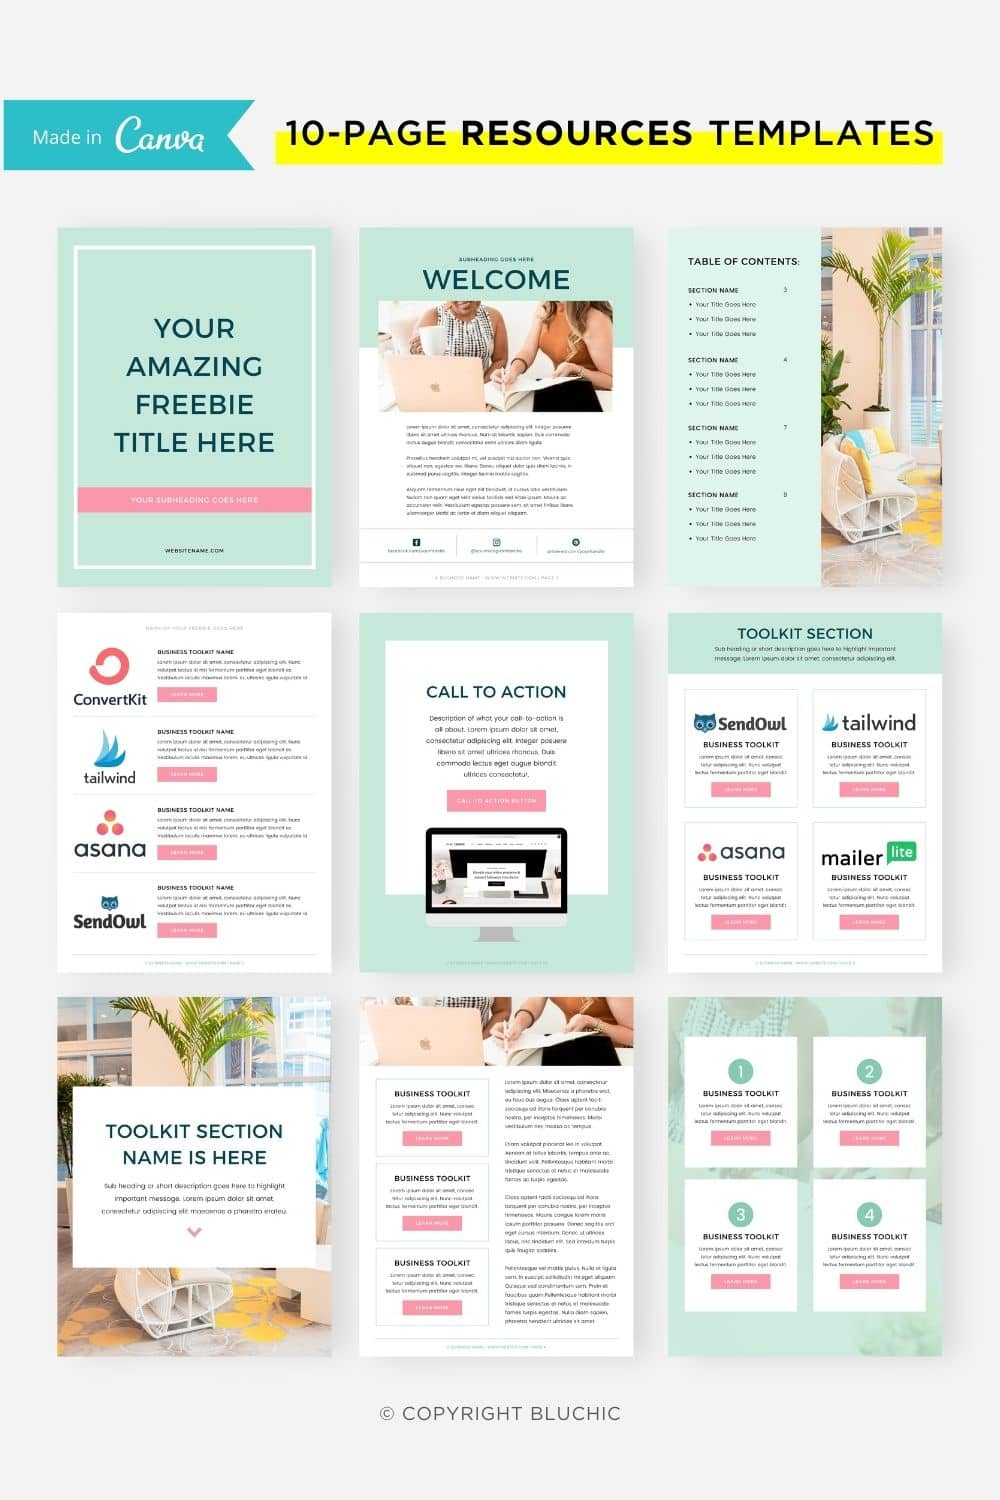 bluchic-canva-templates-resources